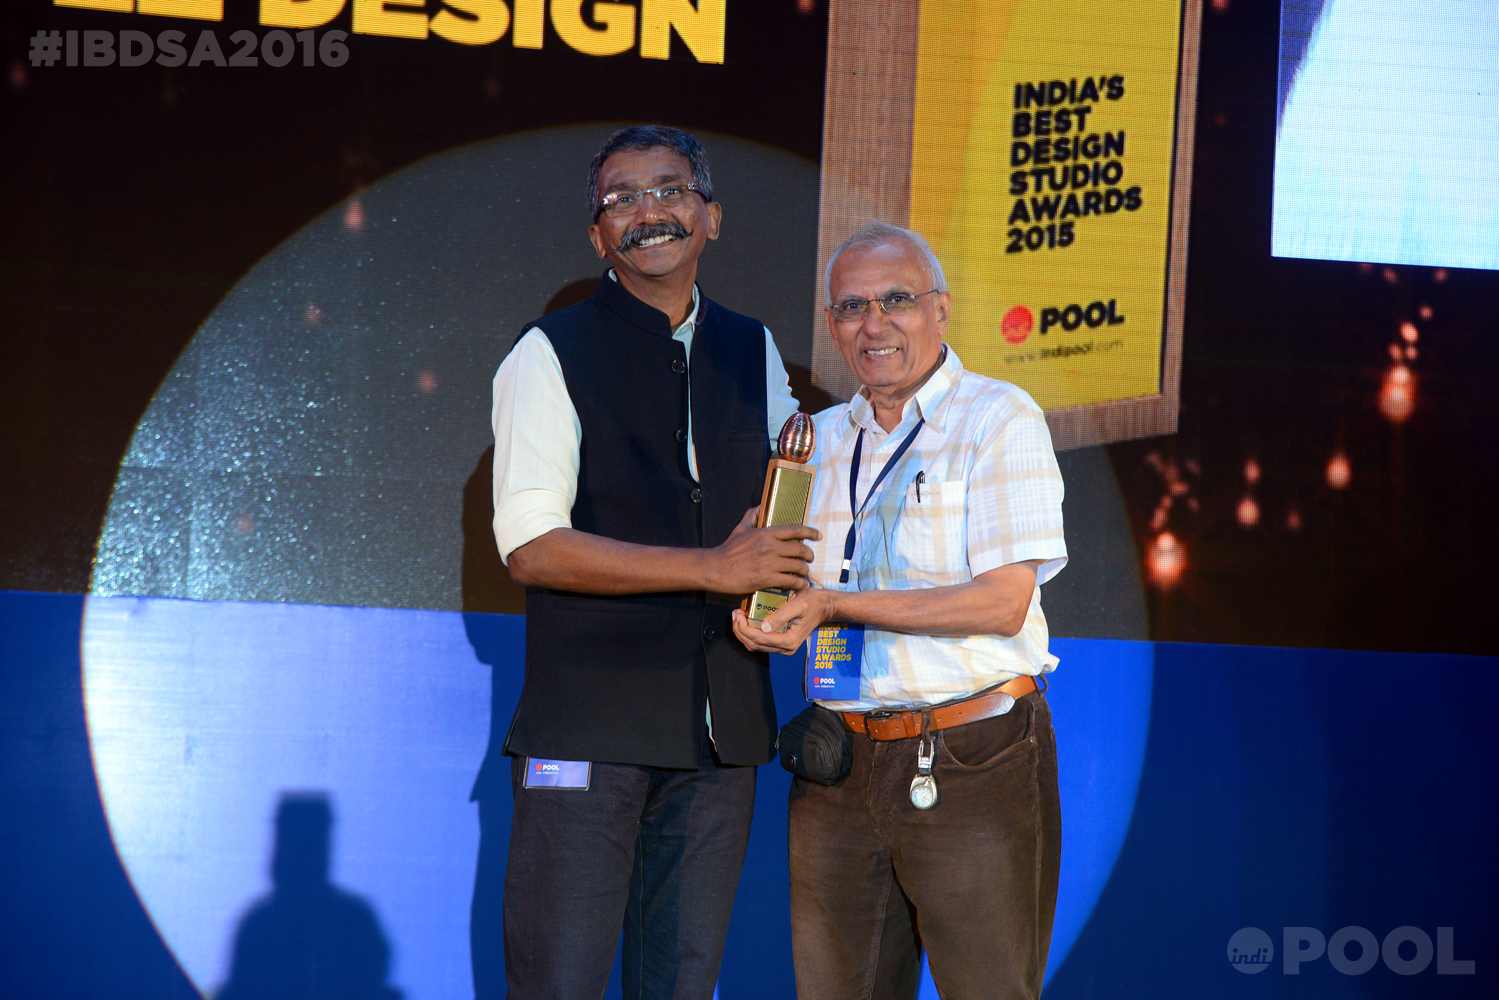 India's Best Brand Design Studio 2015 - Lopez Design